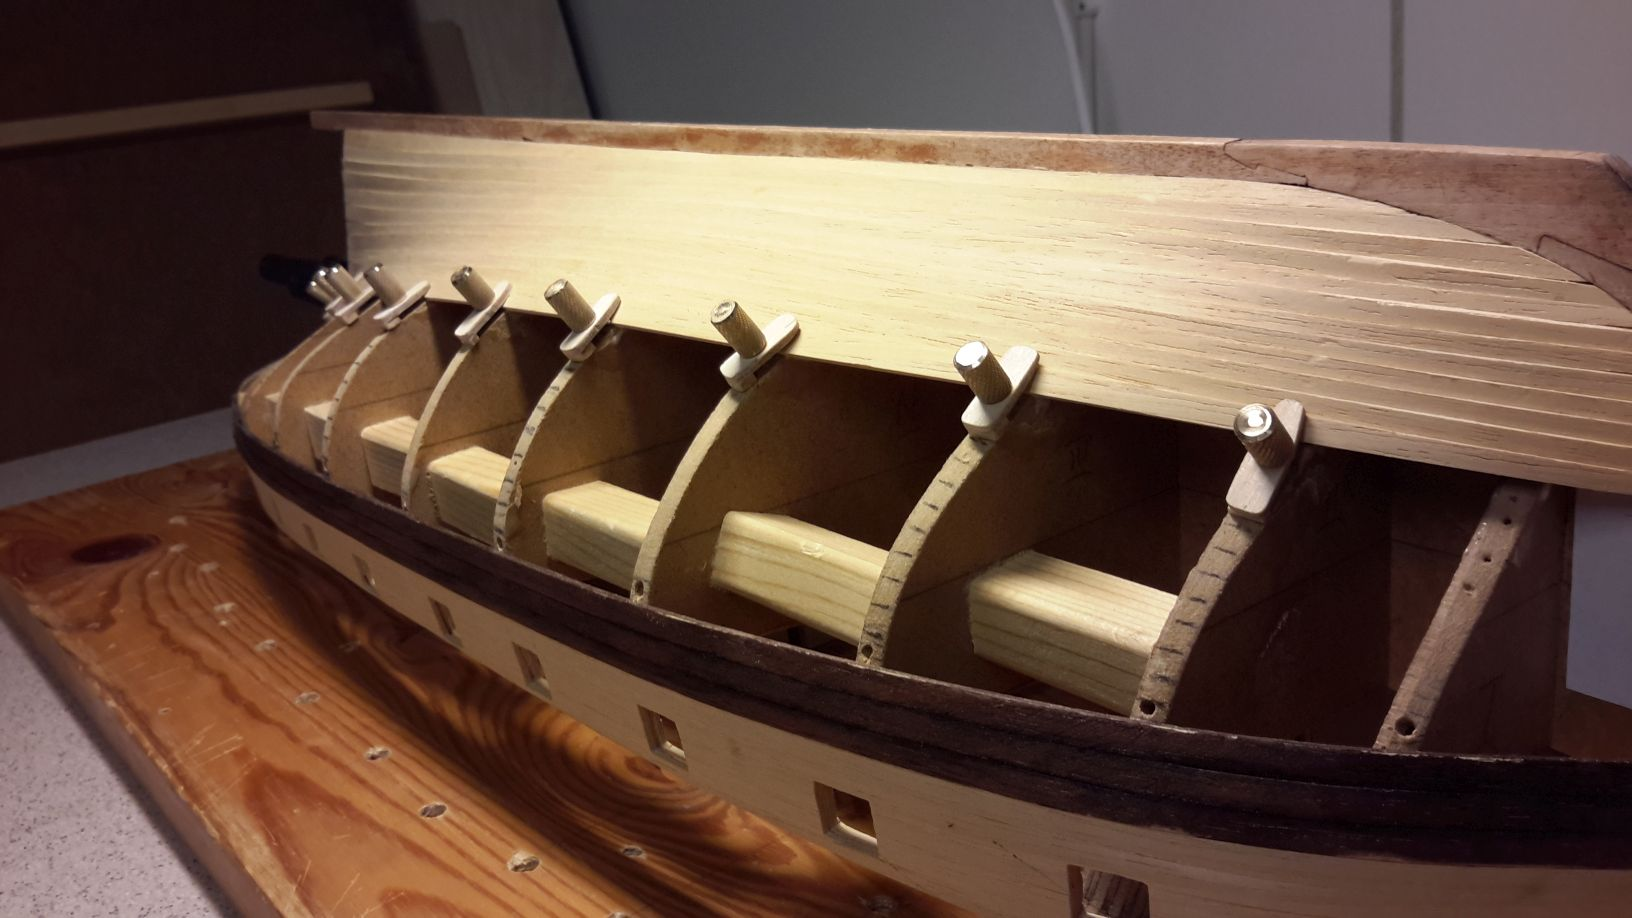 Planking screws (Moved by moderator) - Building, Framing, Planking and plating a ships hull and ...